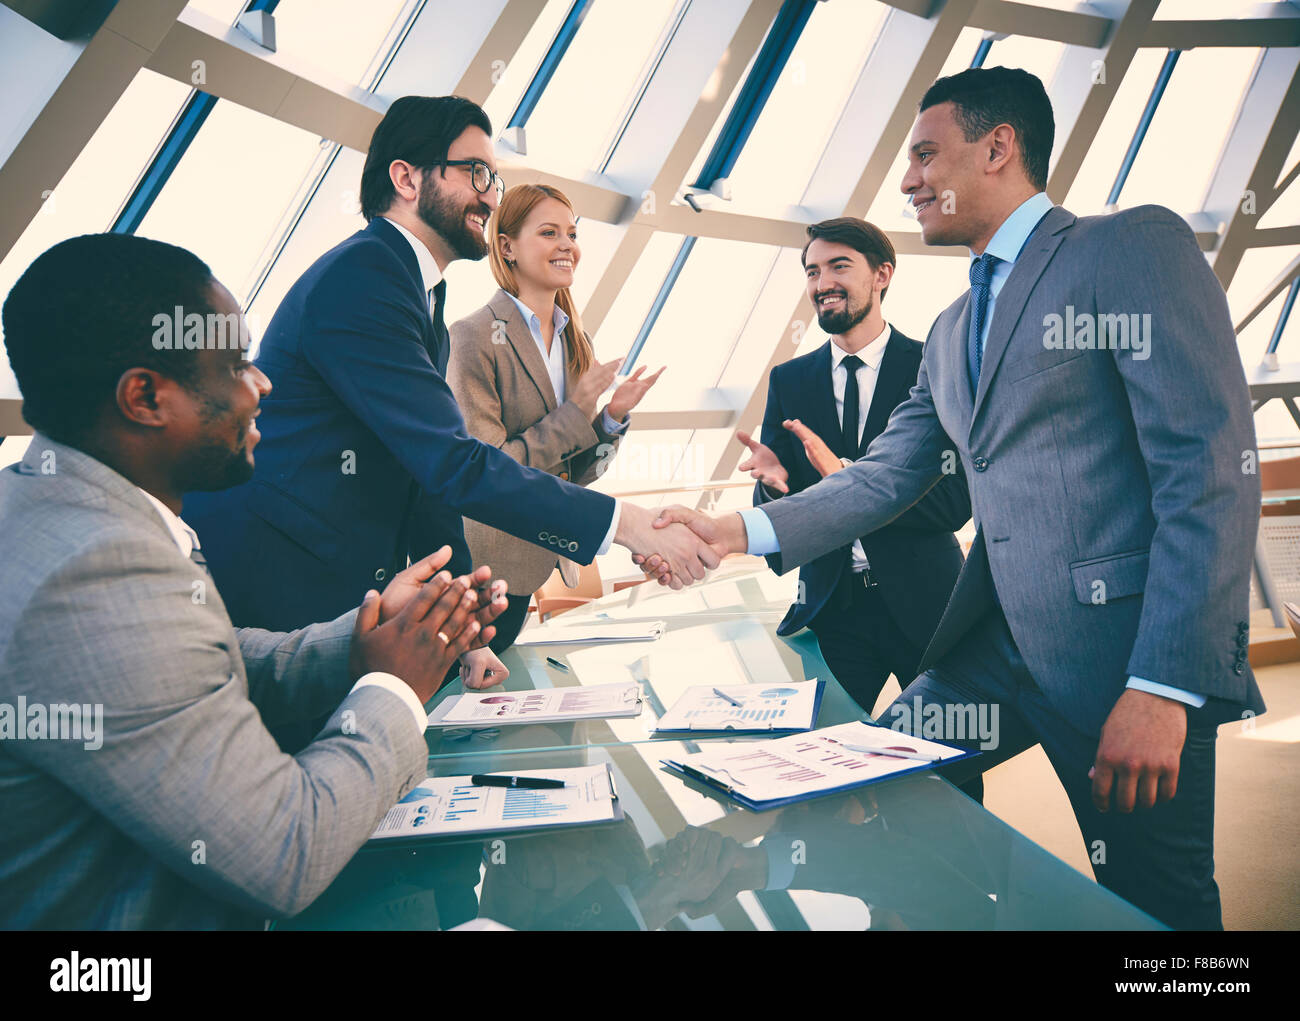 Business partners handshaking after signing contract - Stock Image